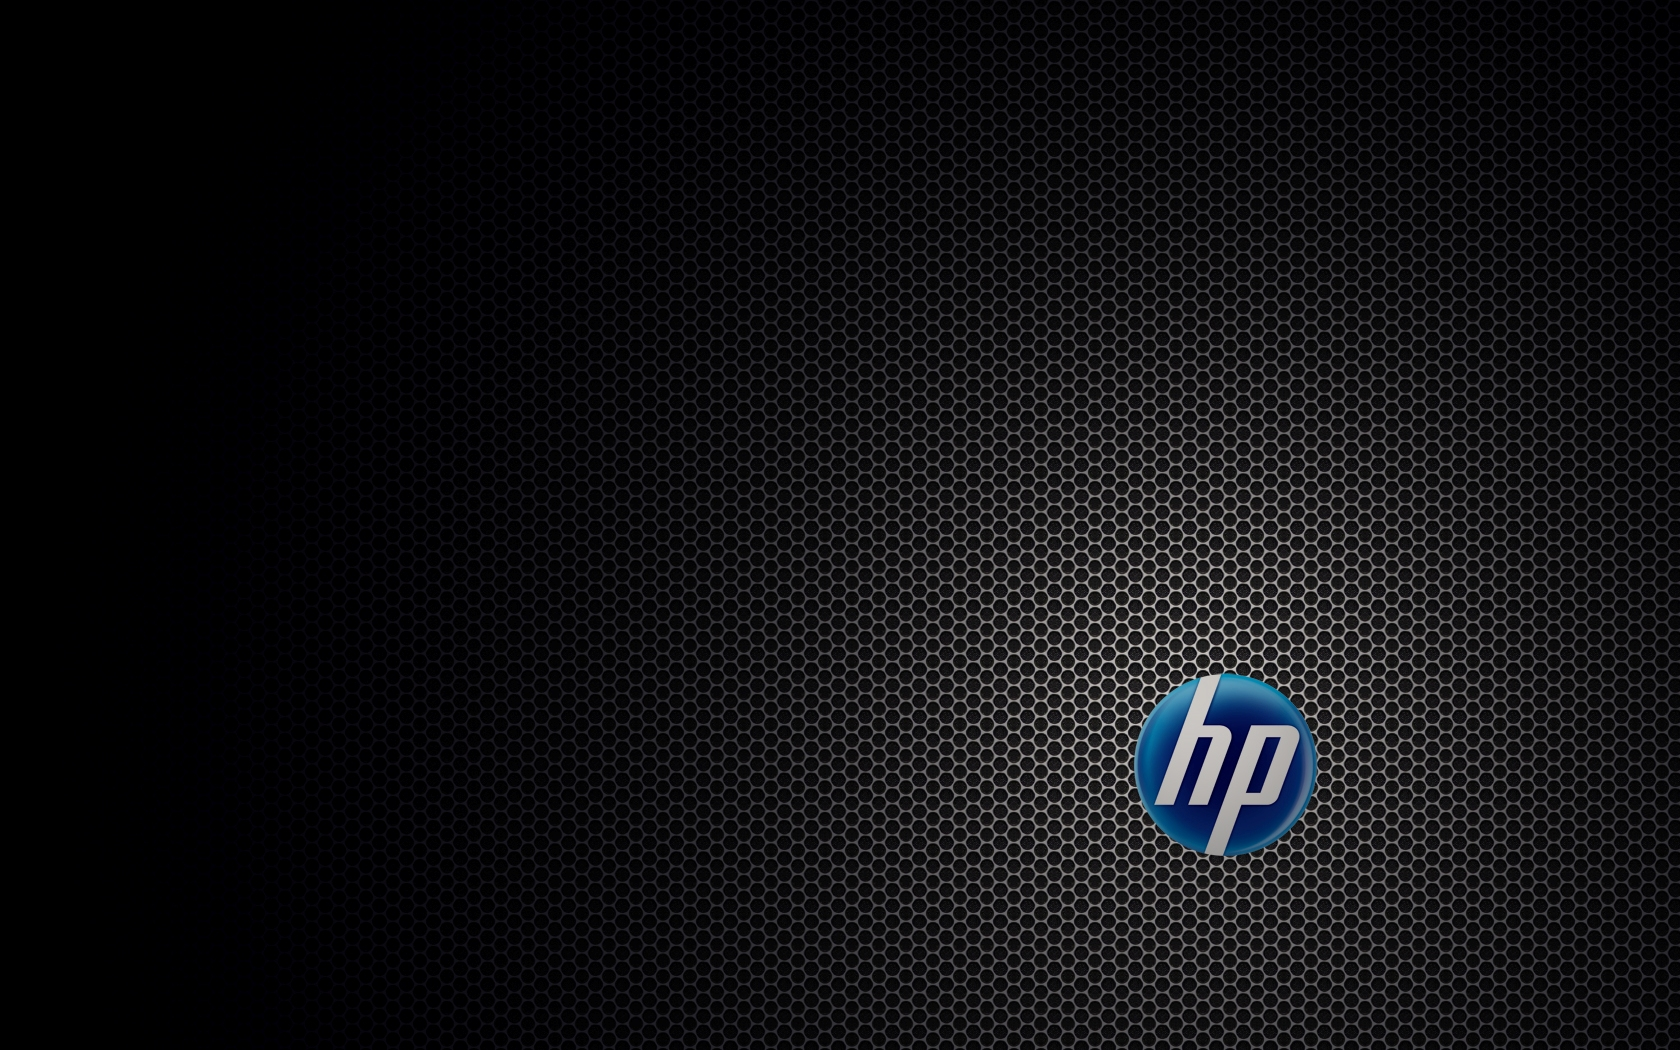 1680x1050 - Wallpapers for HP Envy 50